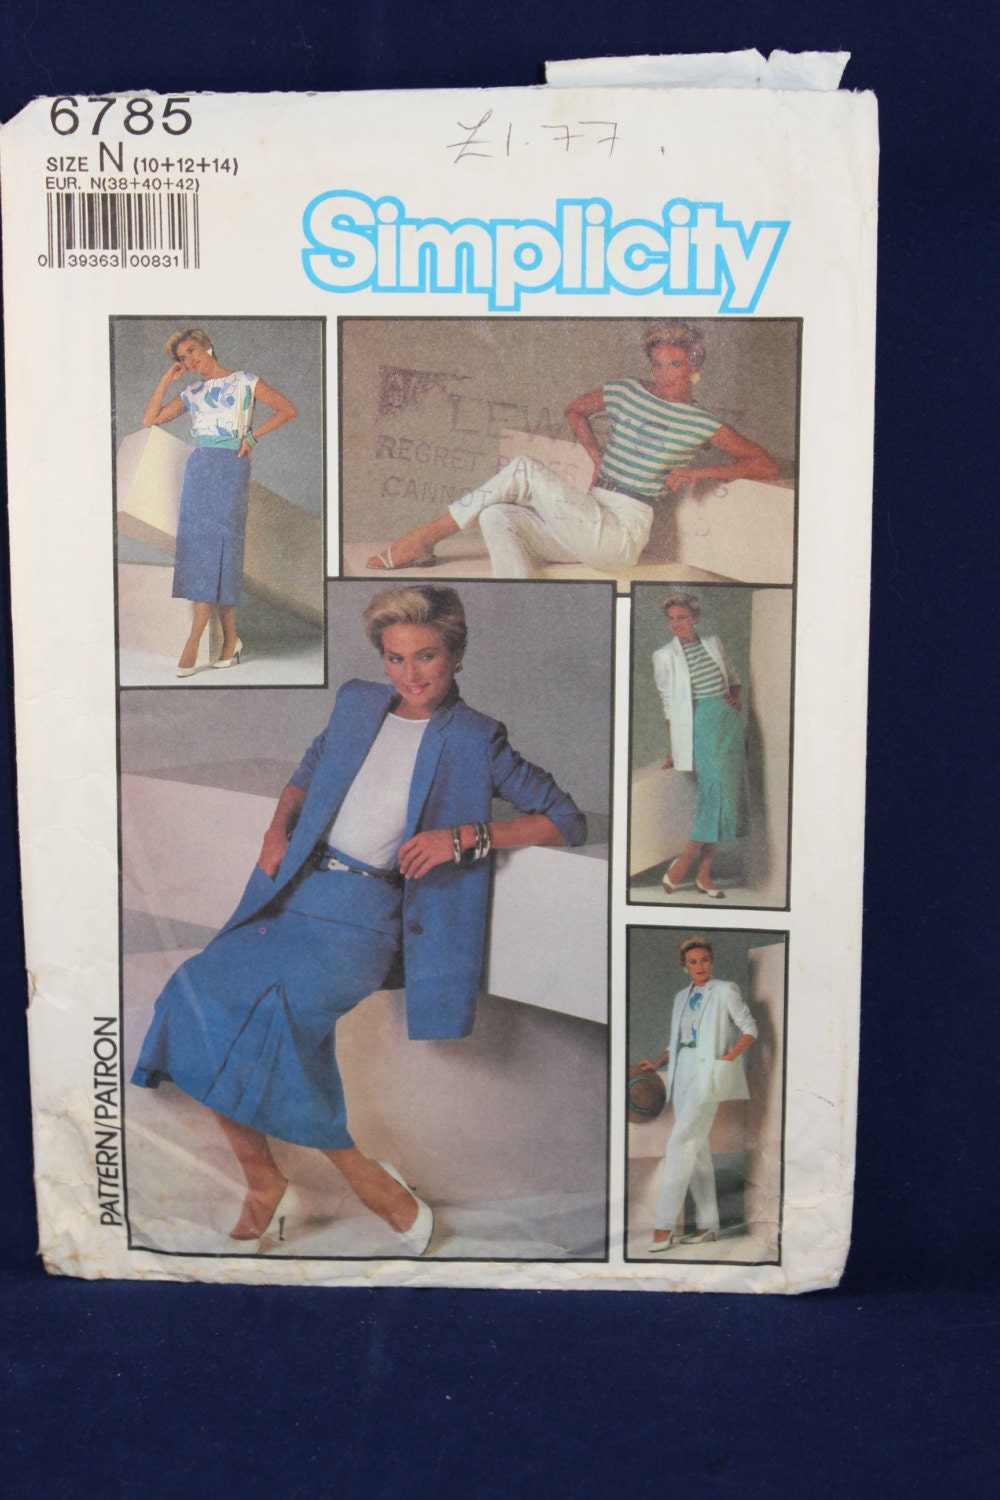 Vintage Sewing Pattern Simplicity 6785 for a Womans Jacket Top Skirt and Trousers in Sizes 101214